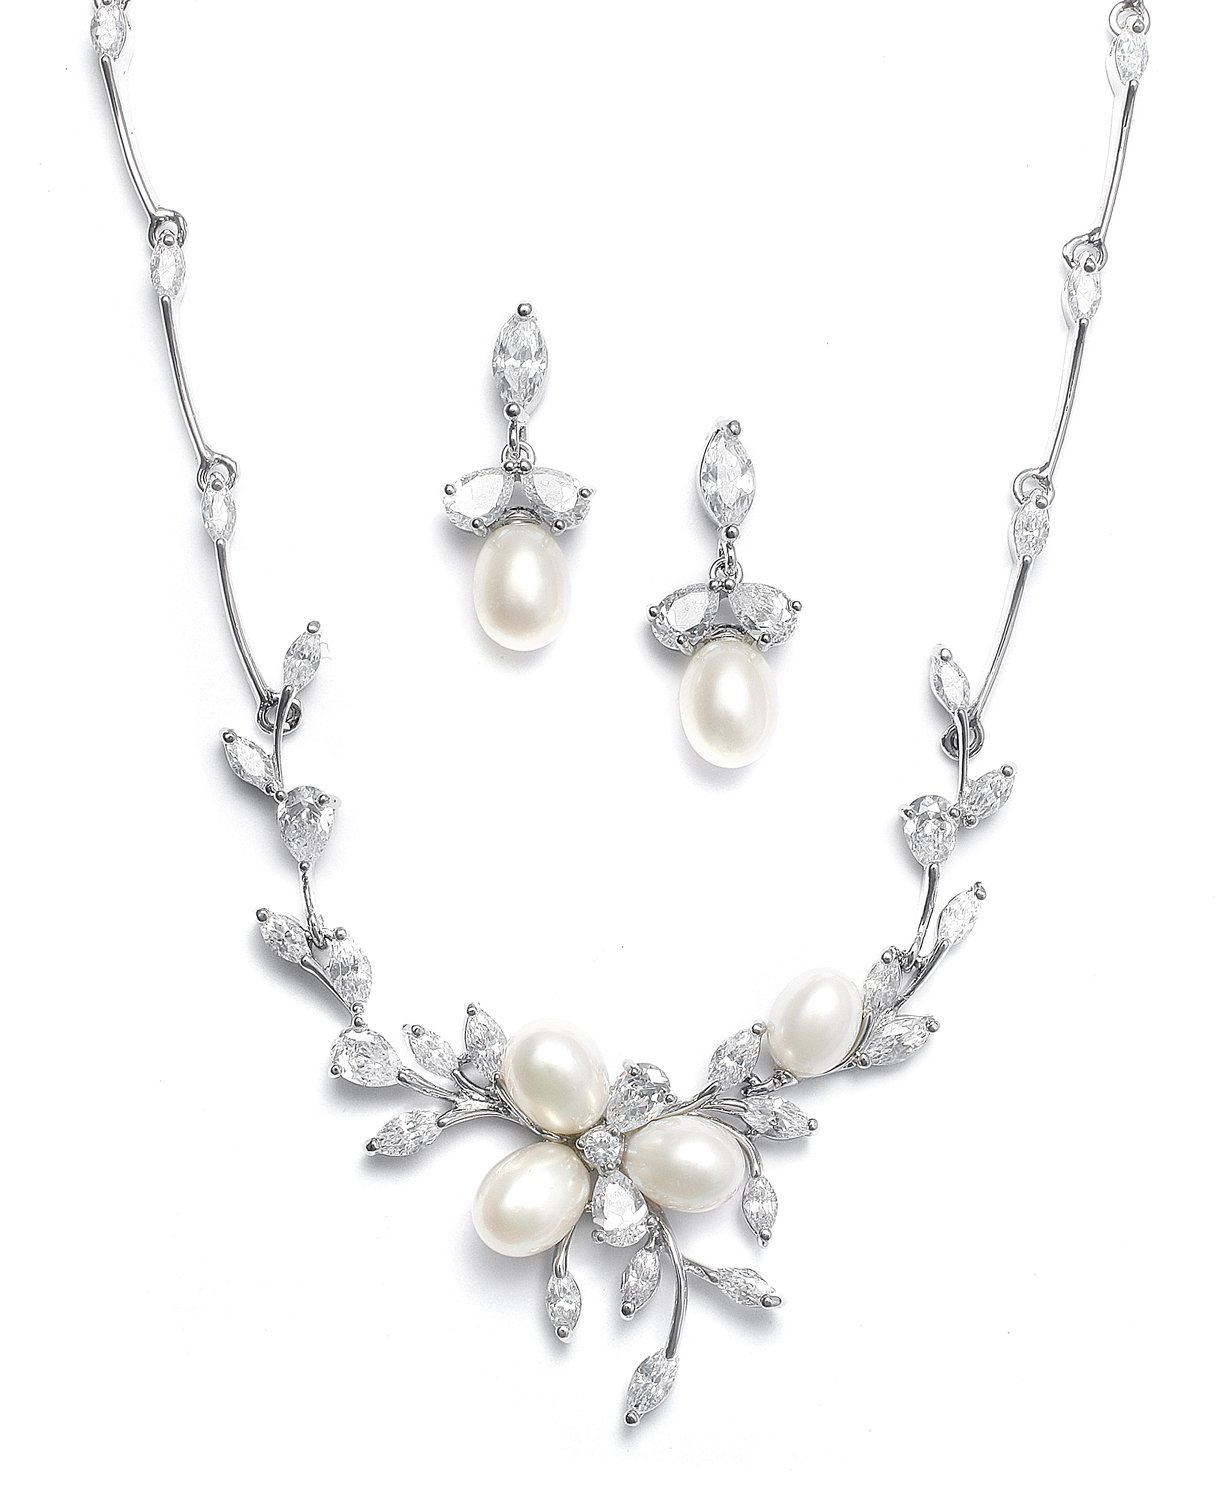 Mariell Genuine Freshwater Pearl & CZ Marquis Necklace Earrings Set Luxury Bridal Jewelry by Mariell